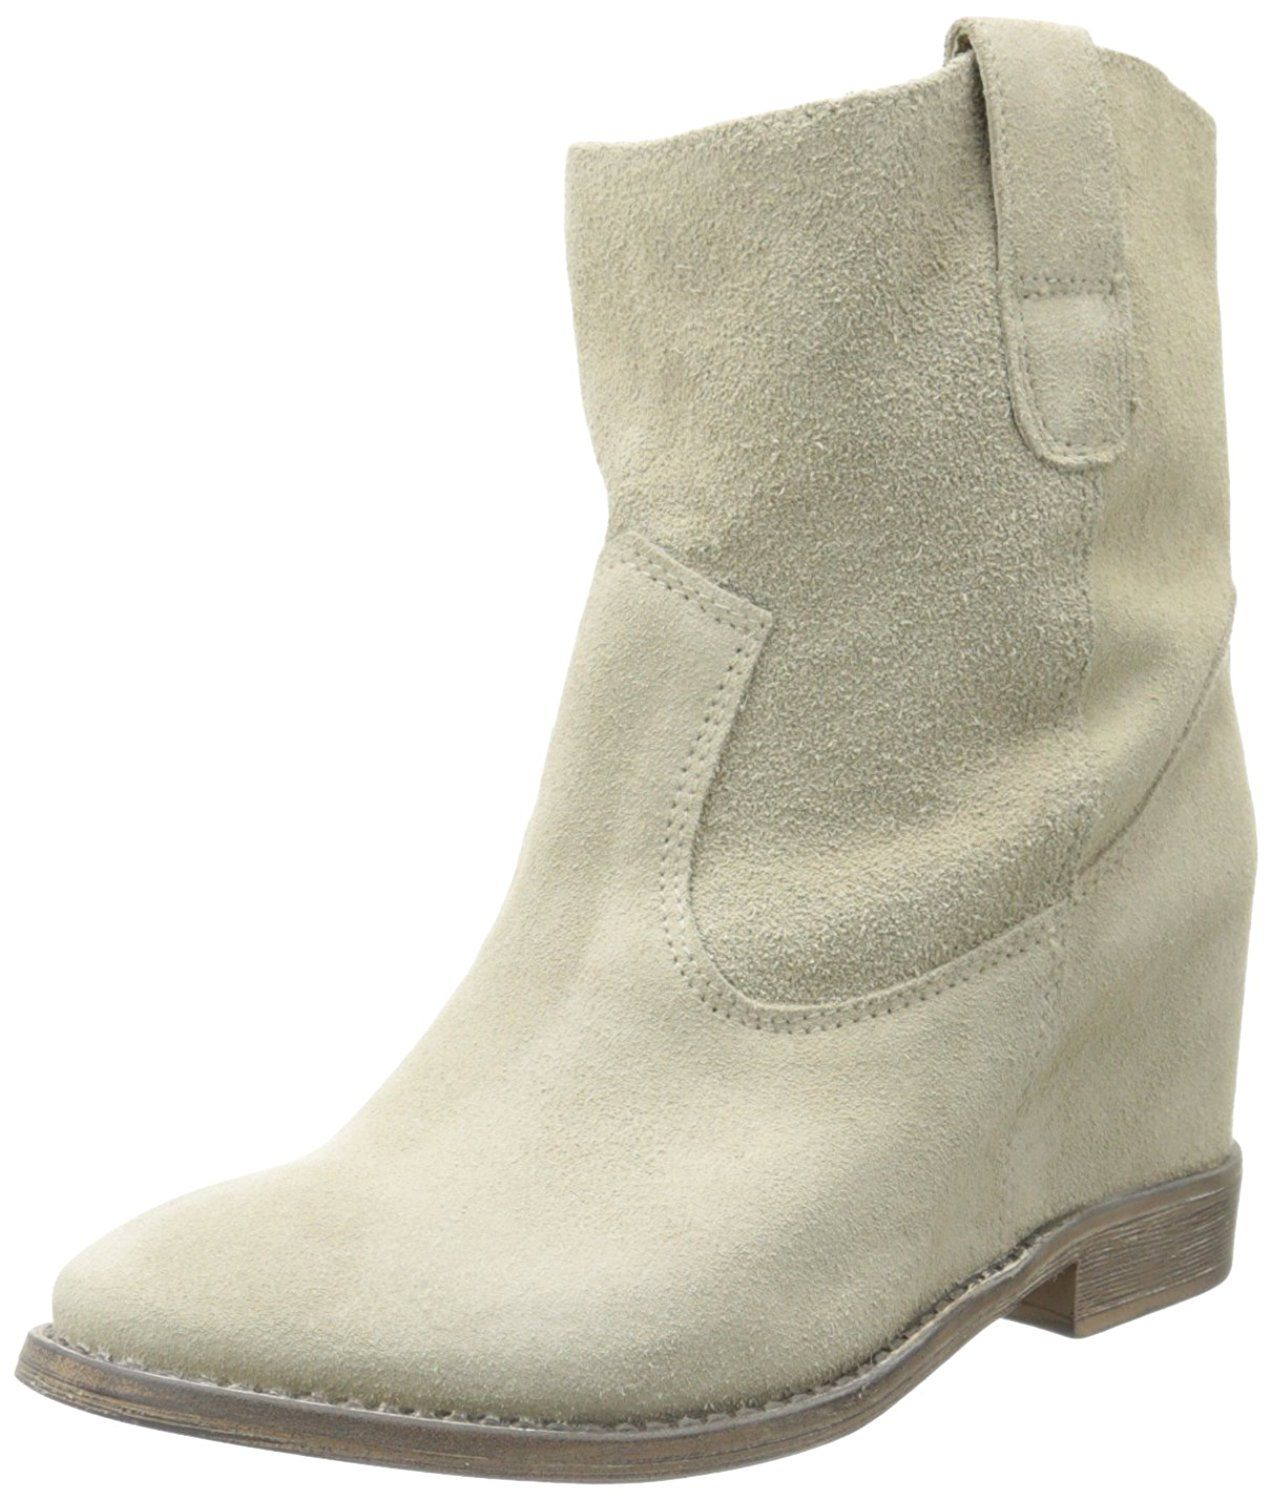 gt; Otbt Sandpiper This Special gt; Product Women's gt; View Boot Quickly qt4arwtOn